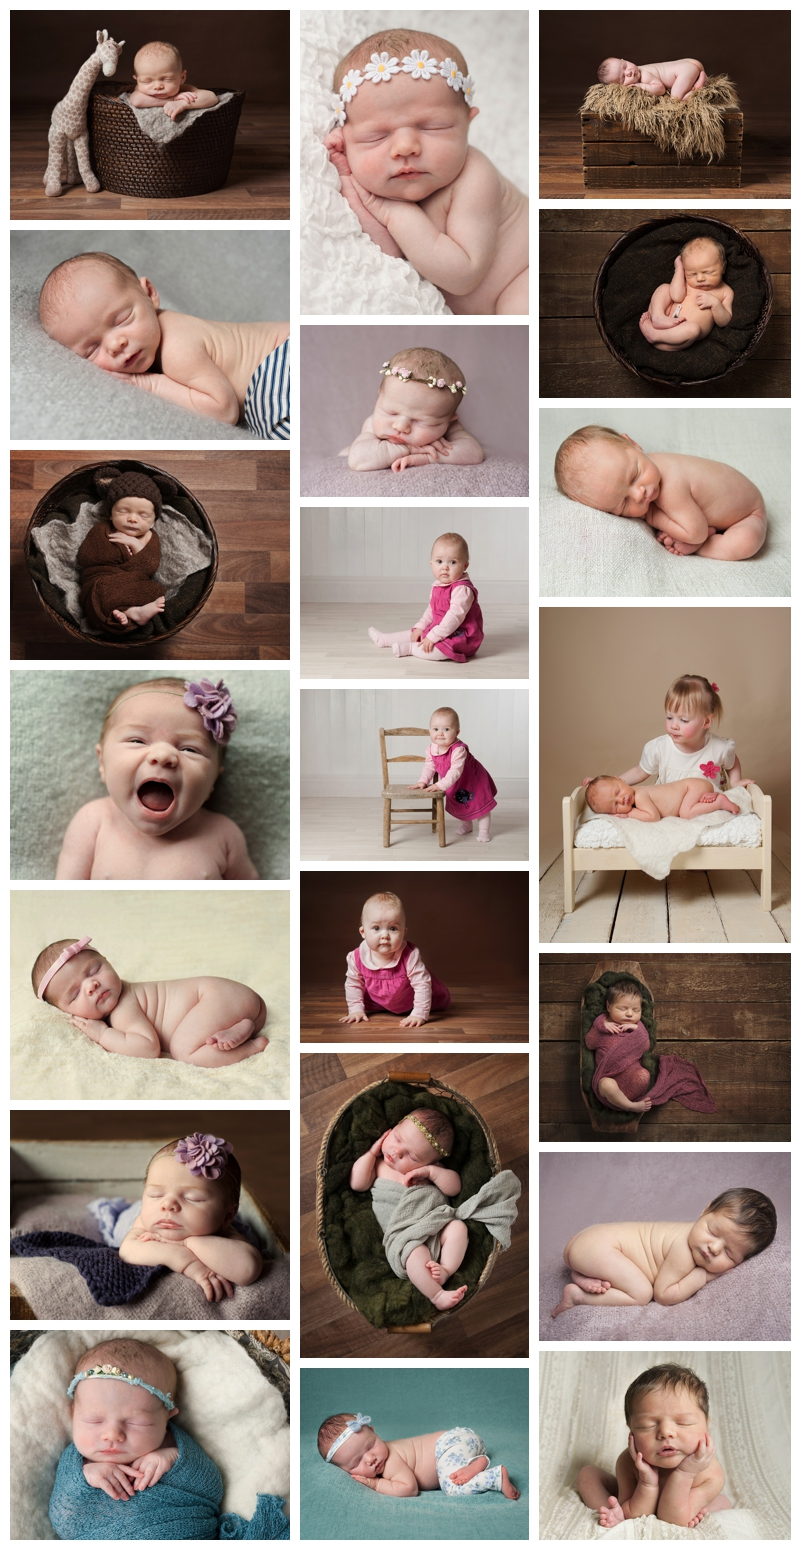 selection of images submitted for Qualified status with the Guild of Newborn and Photographers